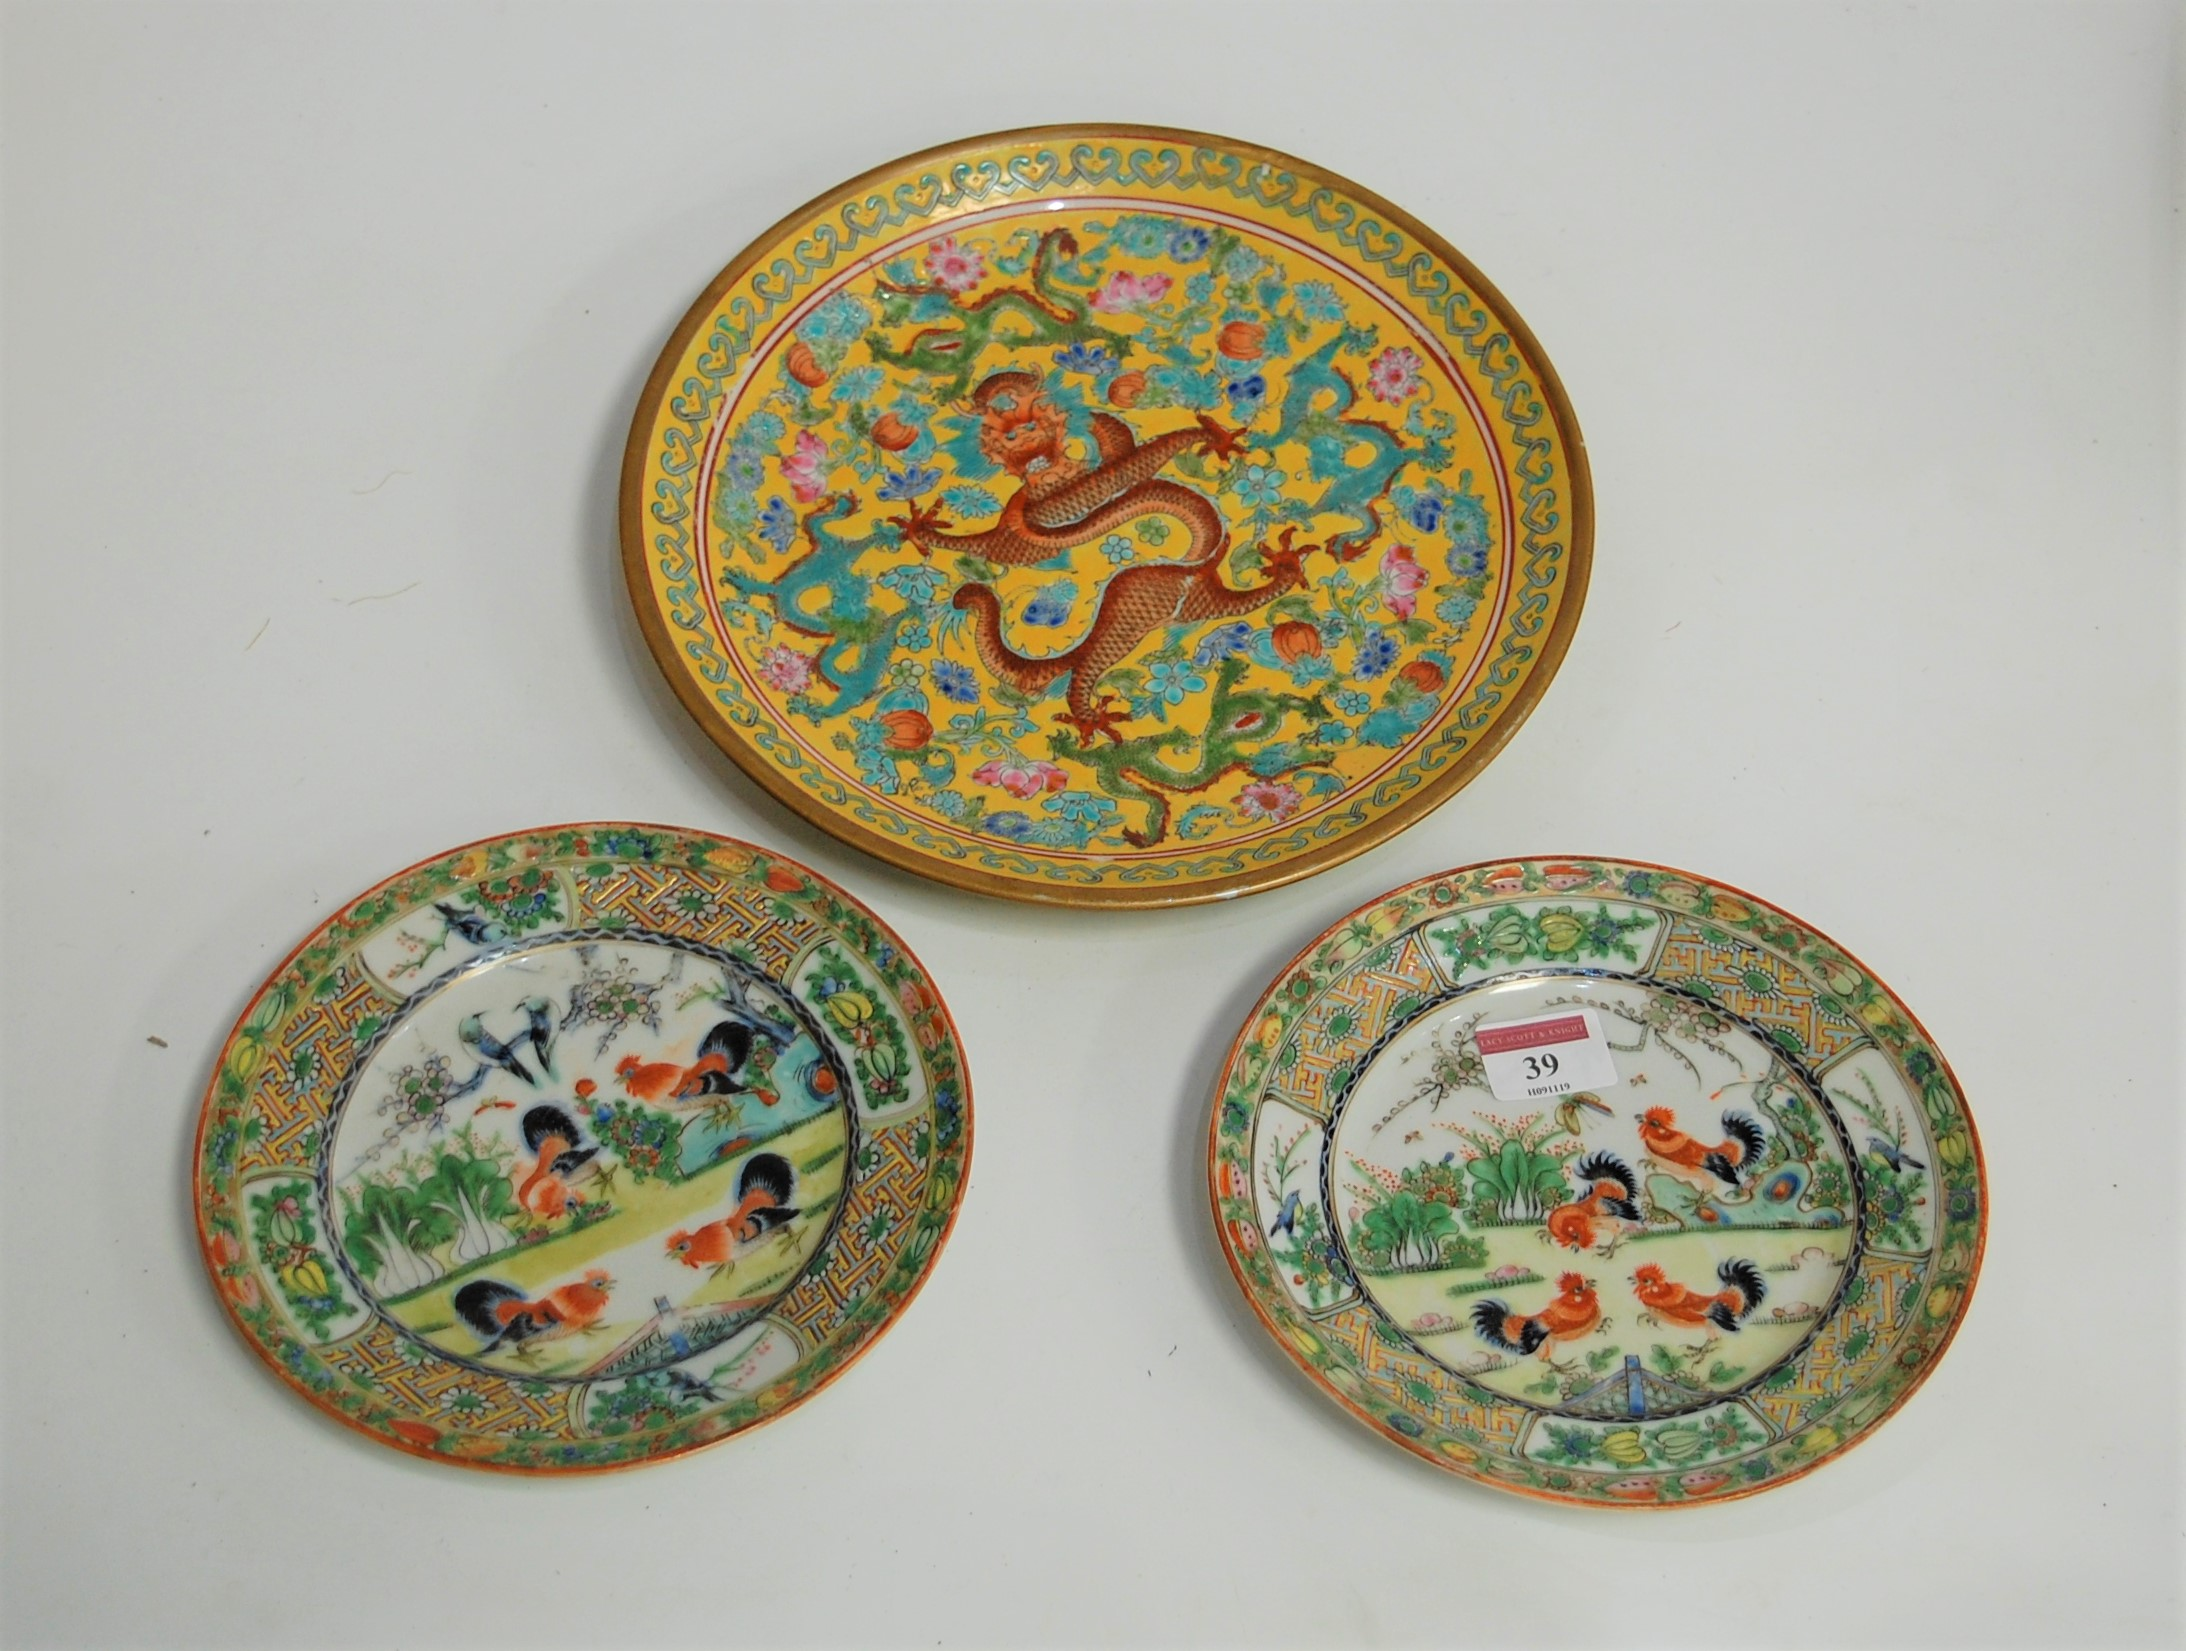 Lot 39 - A modern Chinese plate, on a yellow ground with enamel floral decoration, with central five claw